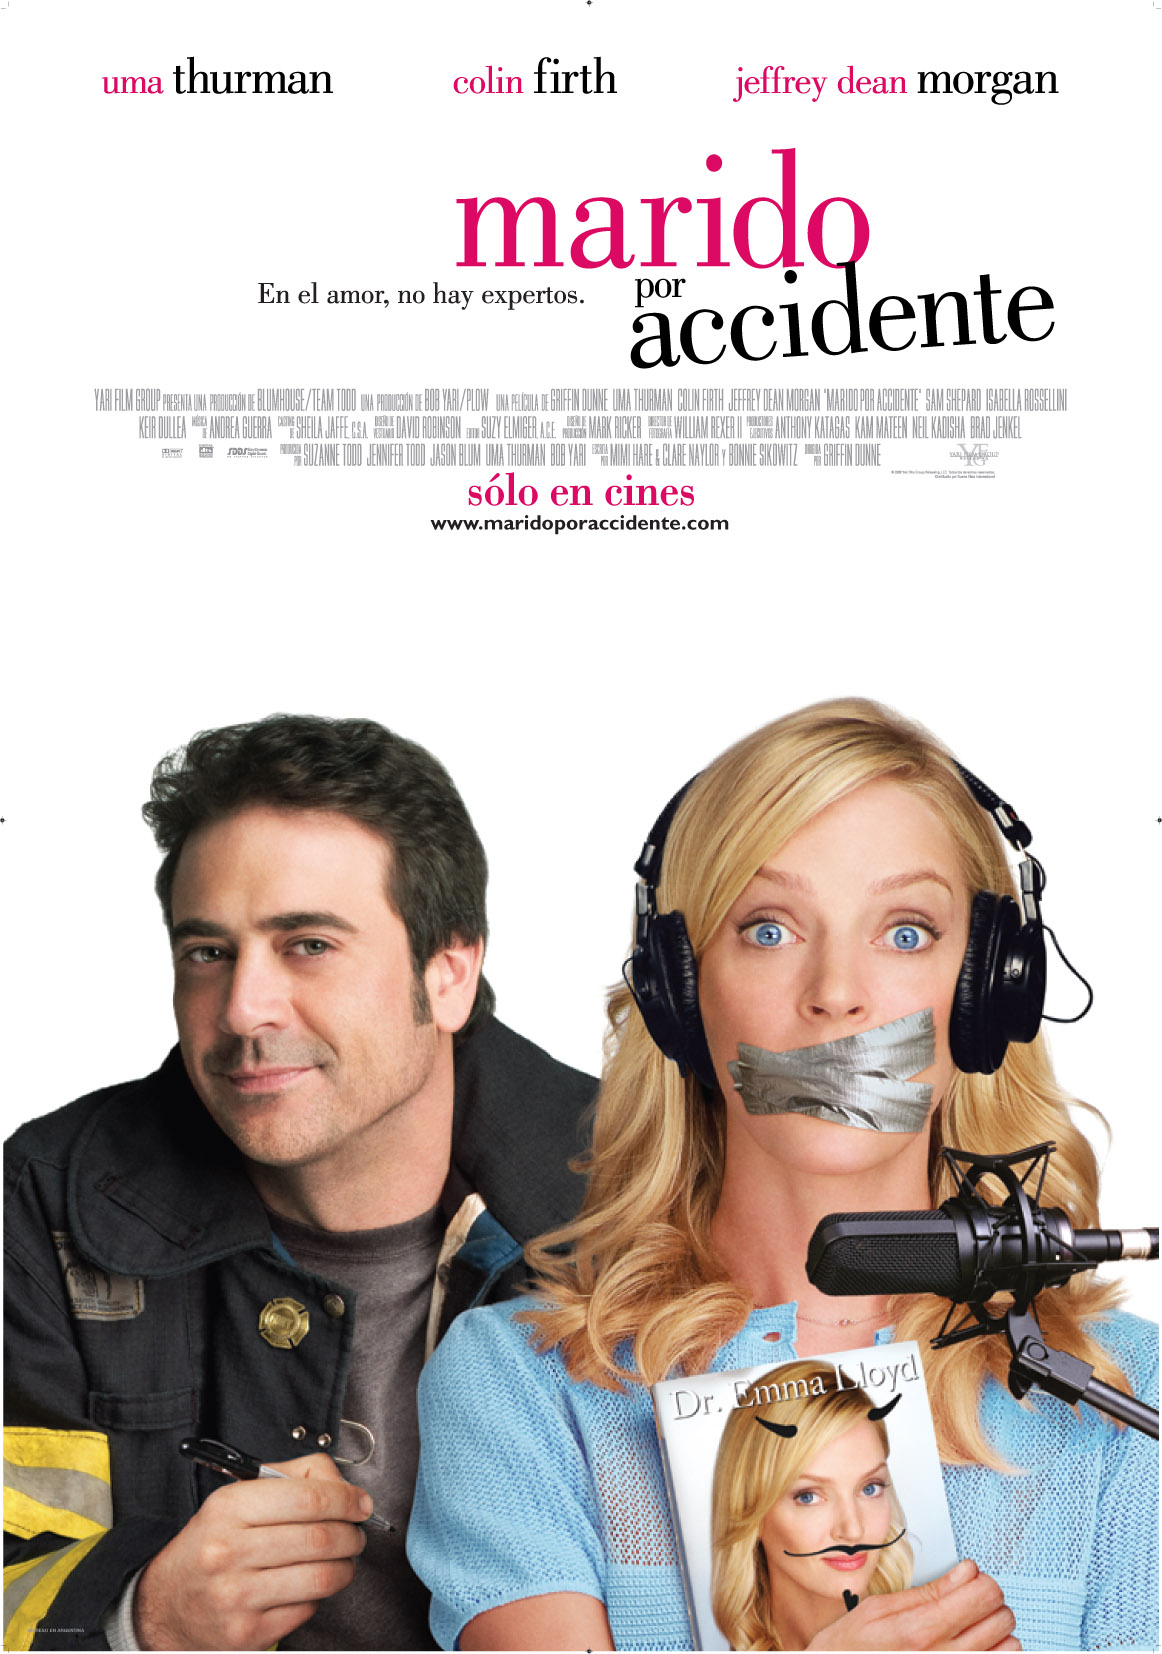 Matrimonio Accidente Sinopsis : Marido por accidente doblaje wiki fandom powered by wikia